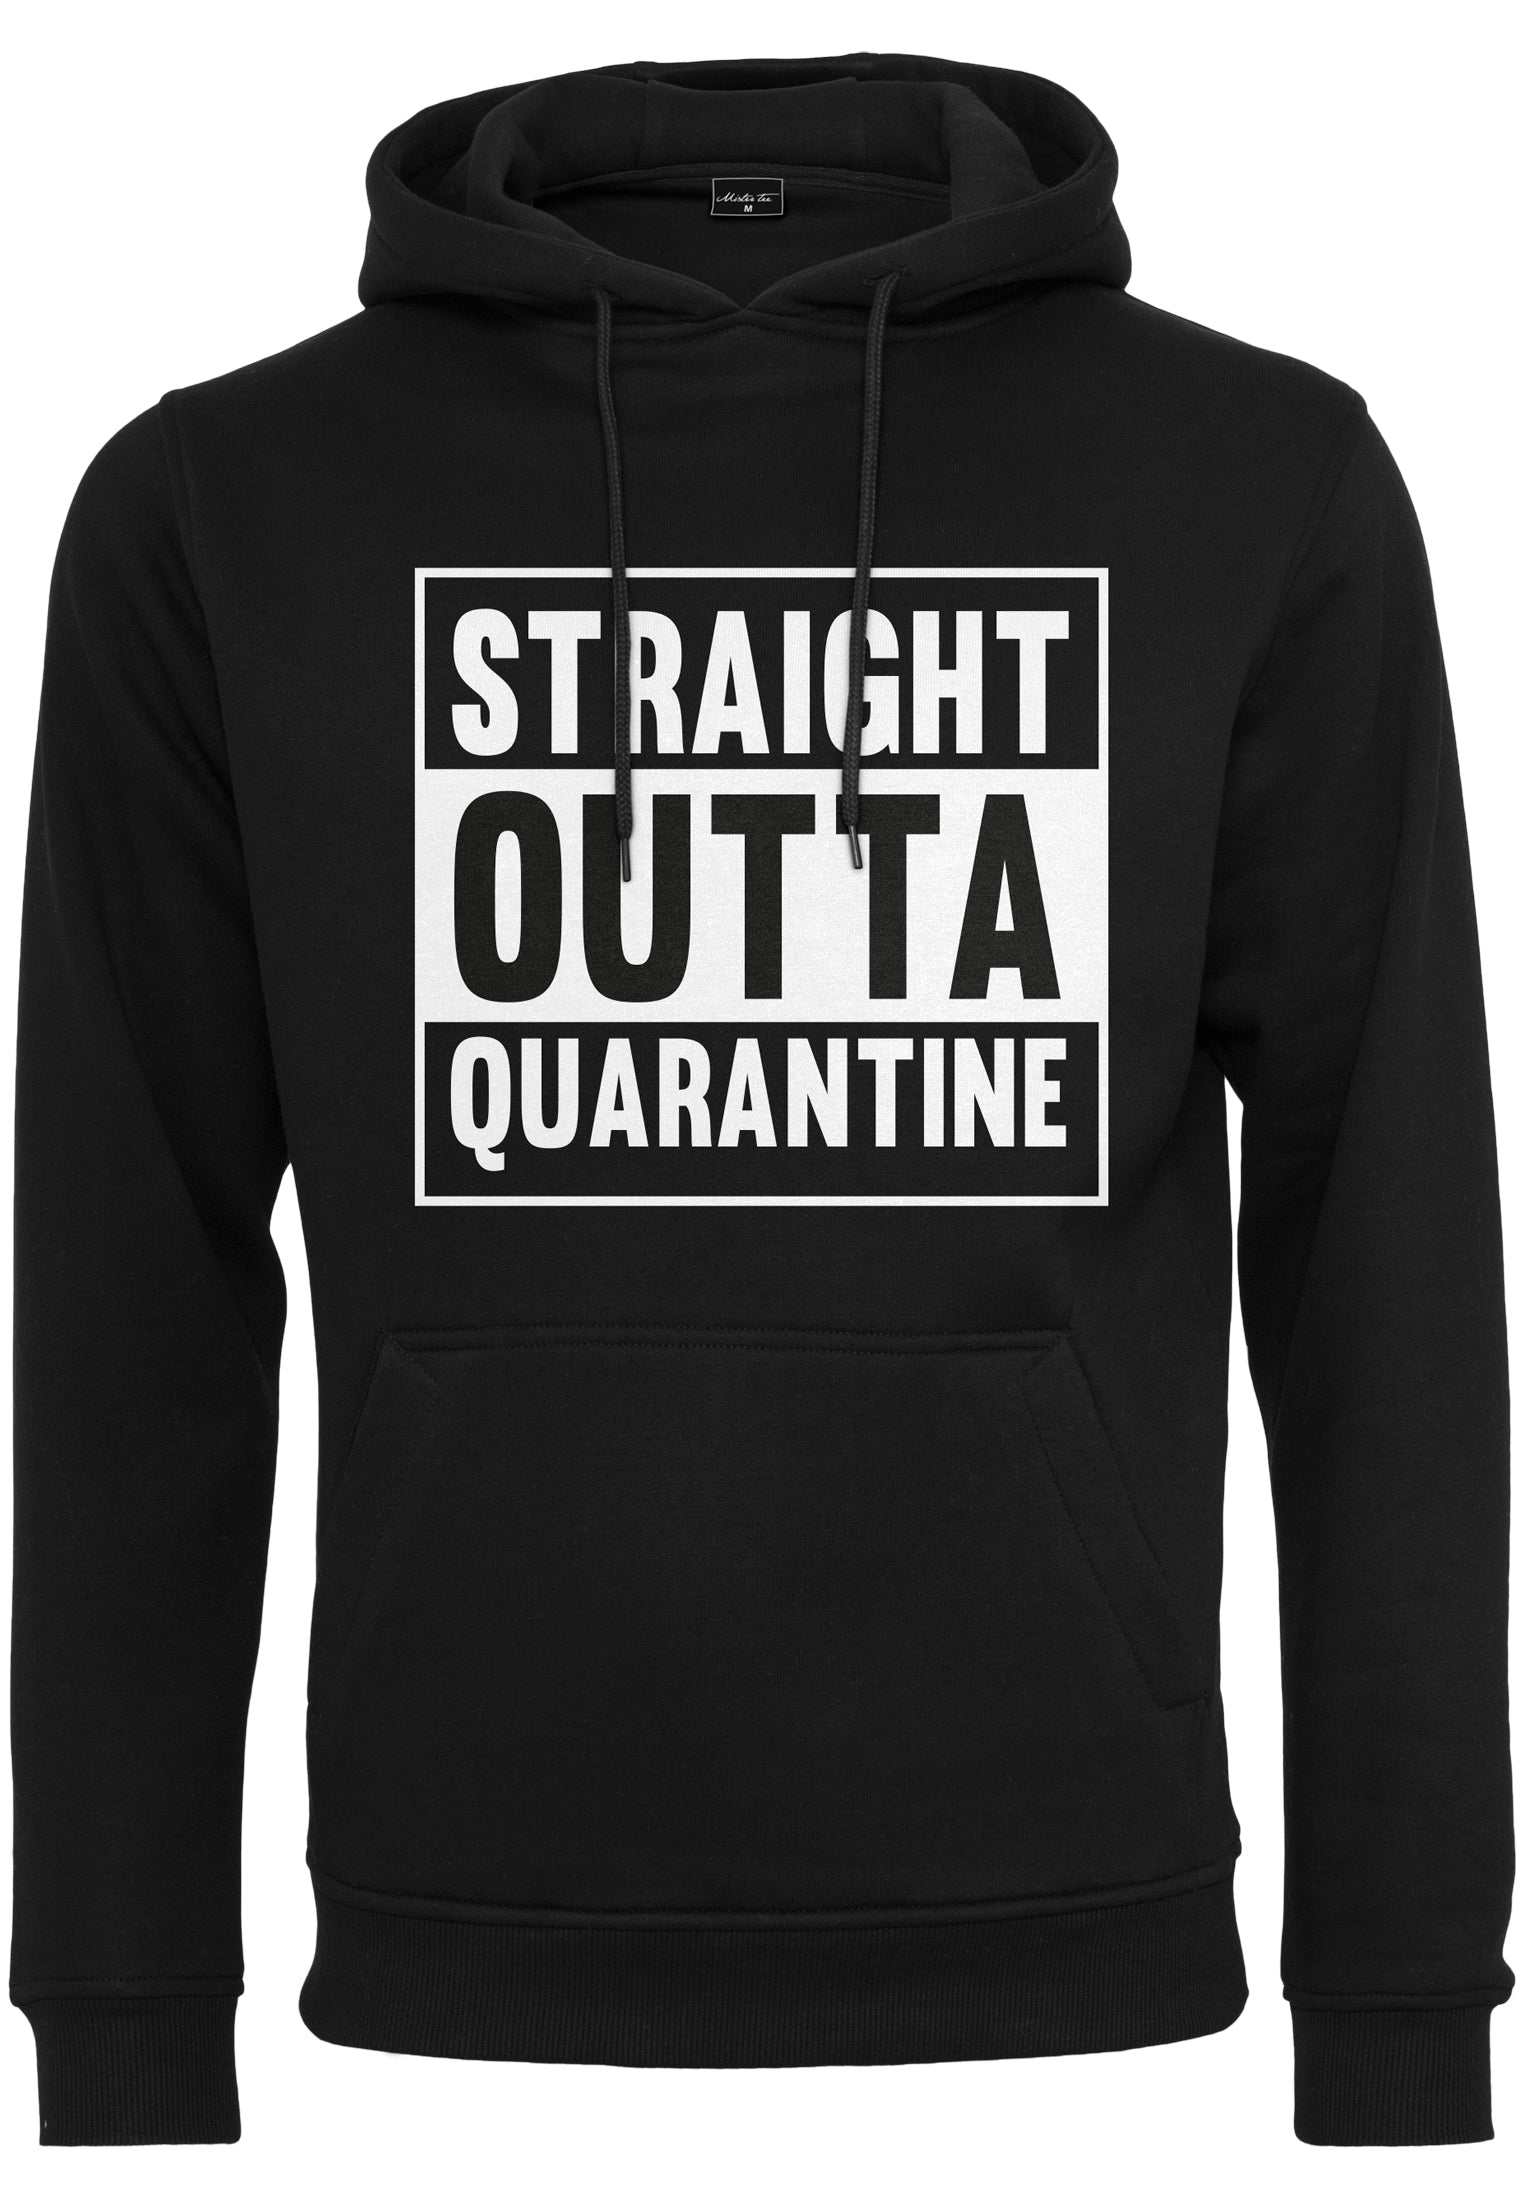 Straight Outta Quarantine Hoody